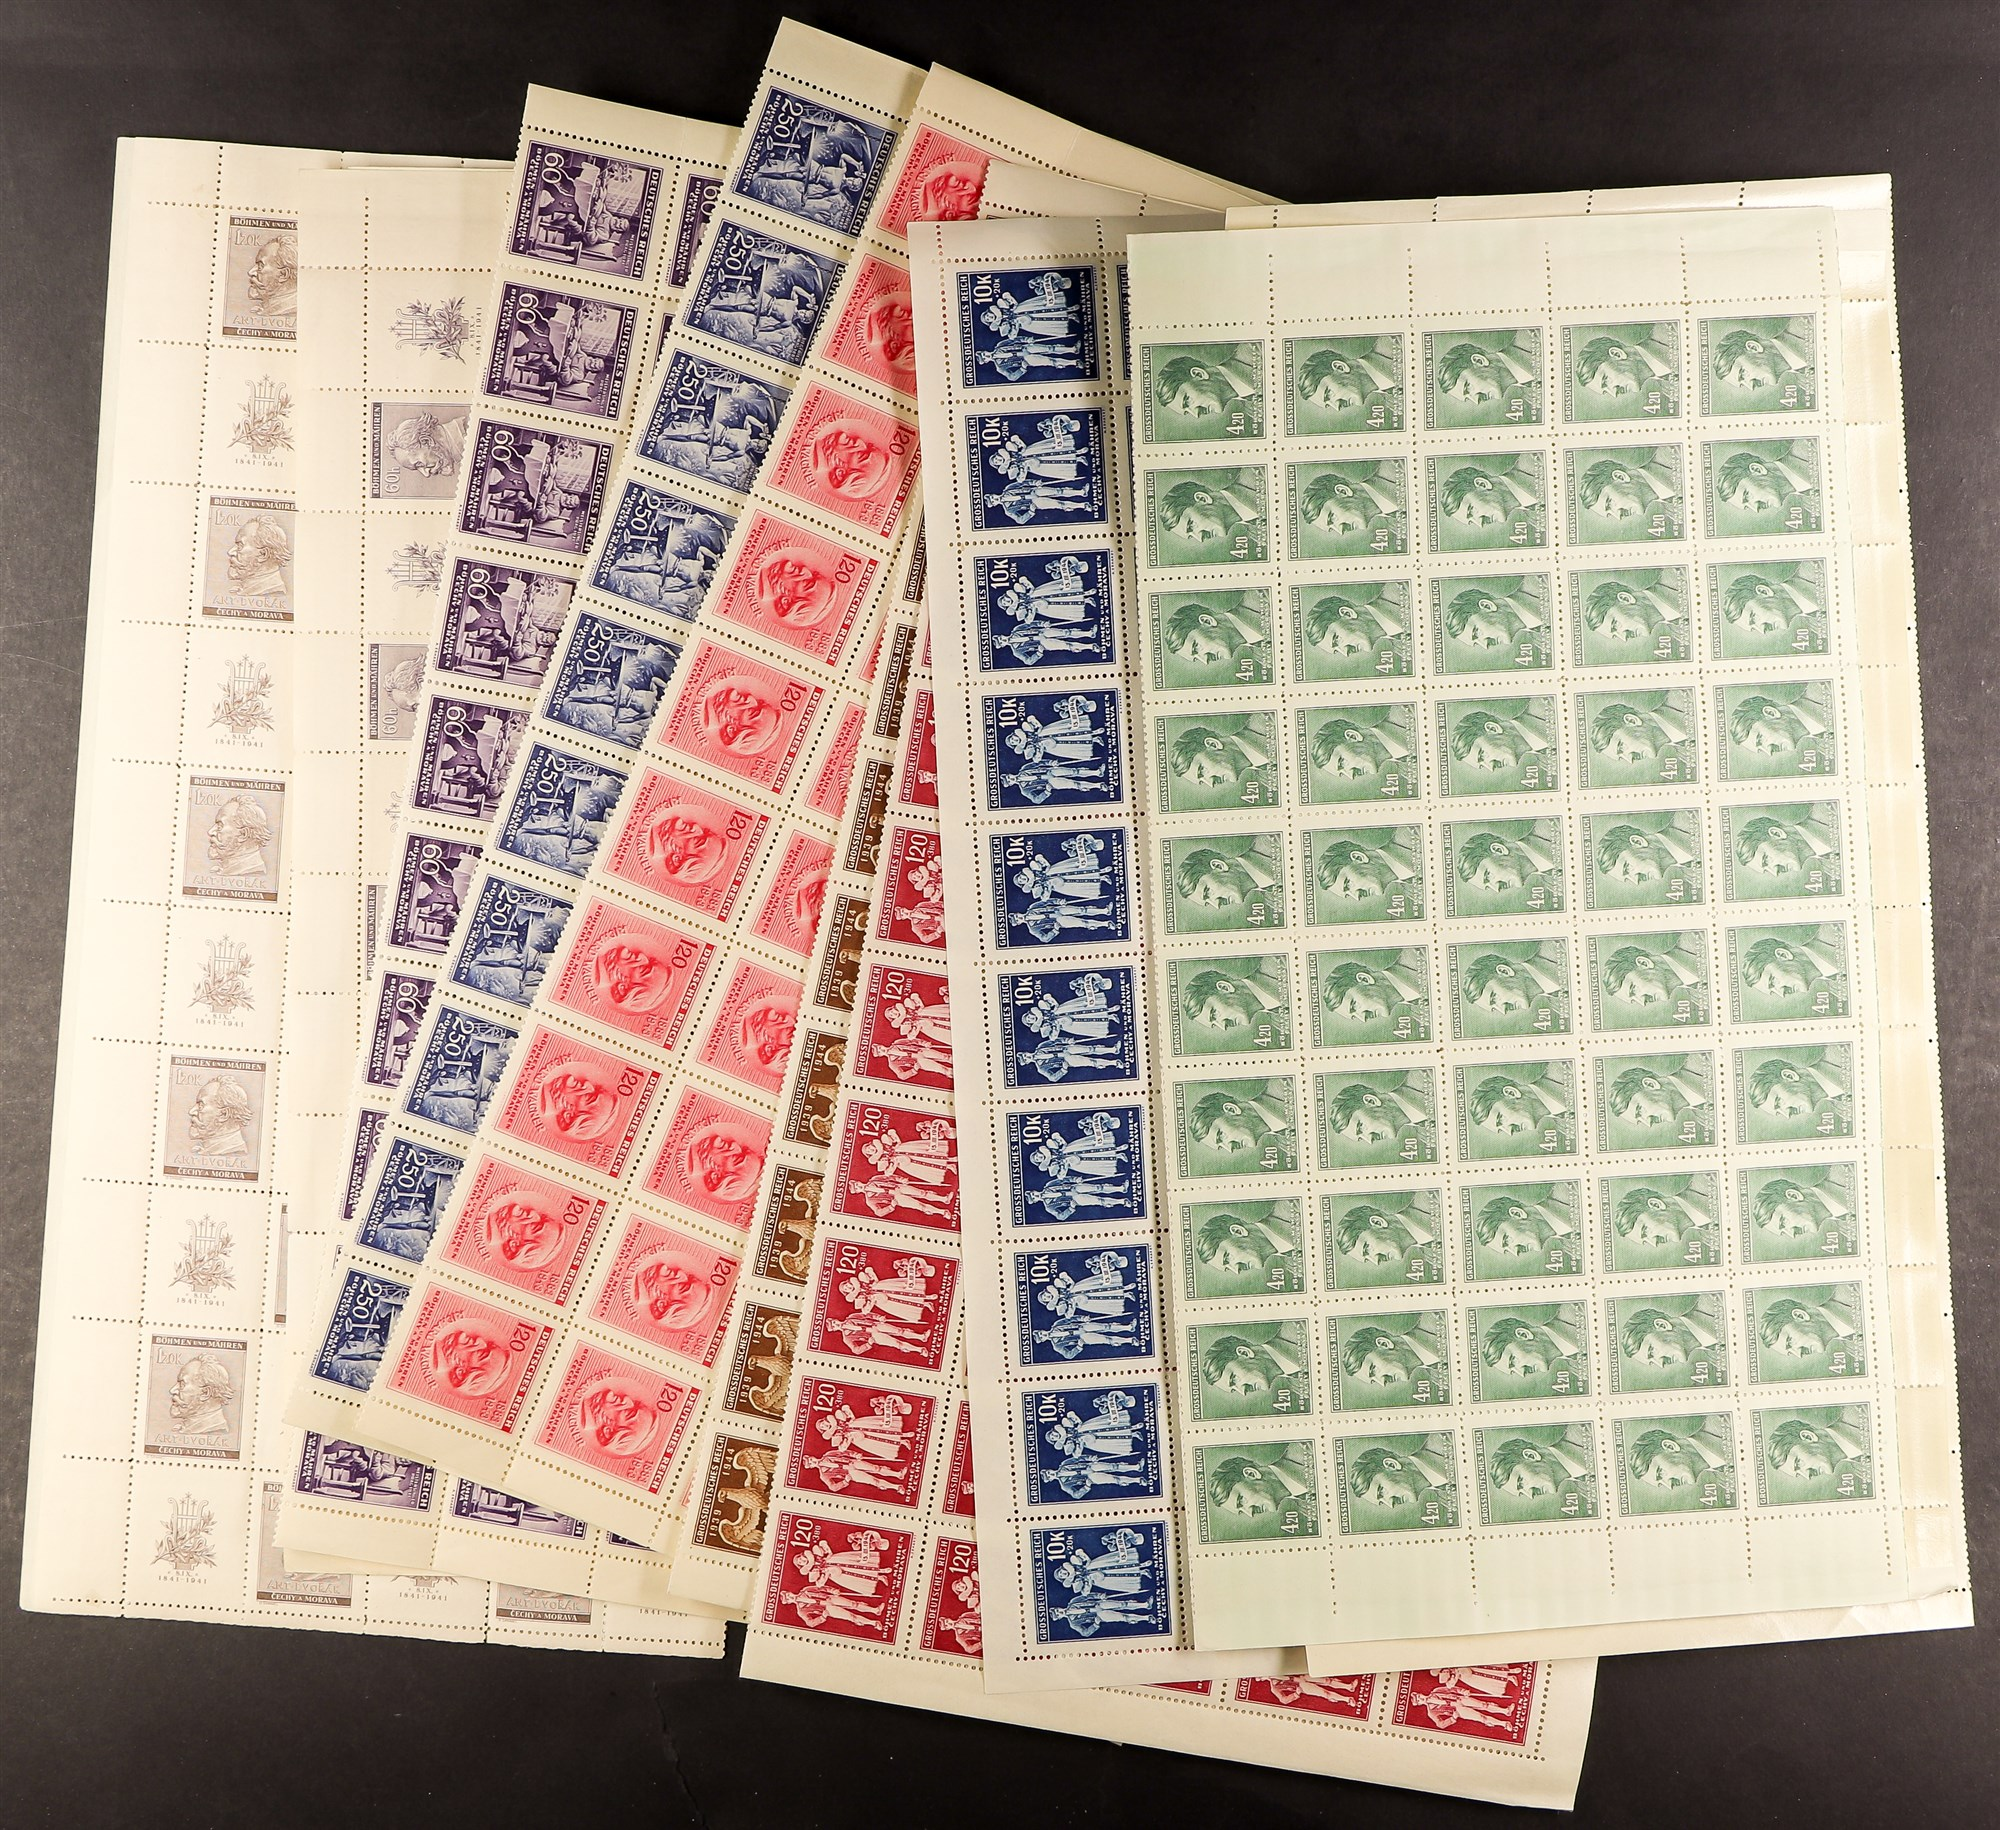 GERMAN OCCUPATIONS BOHEMIA AND MORAVIA 1939-44 never hinged mint collection, incl. 1939 - Image 4 of 4